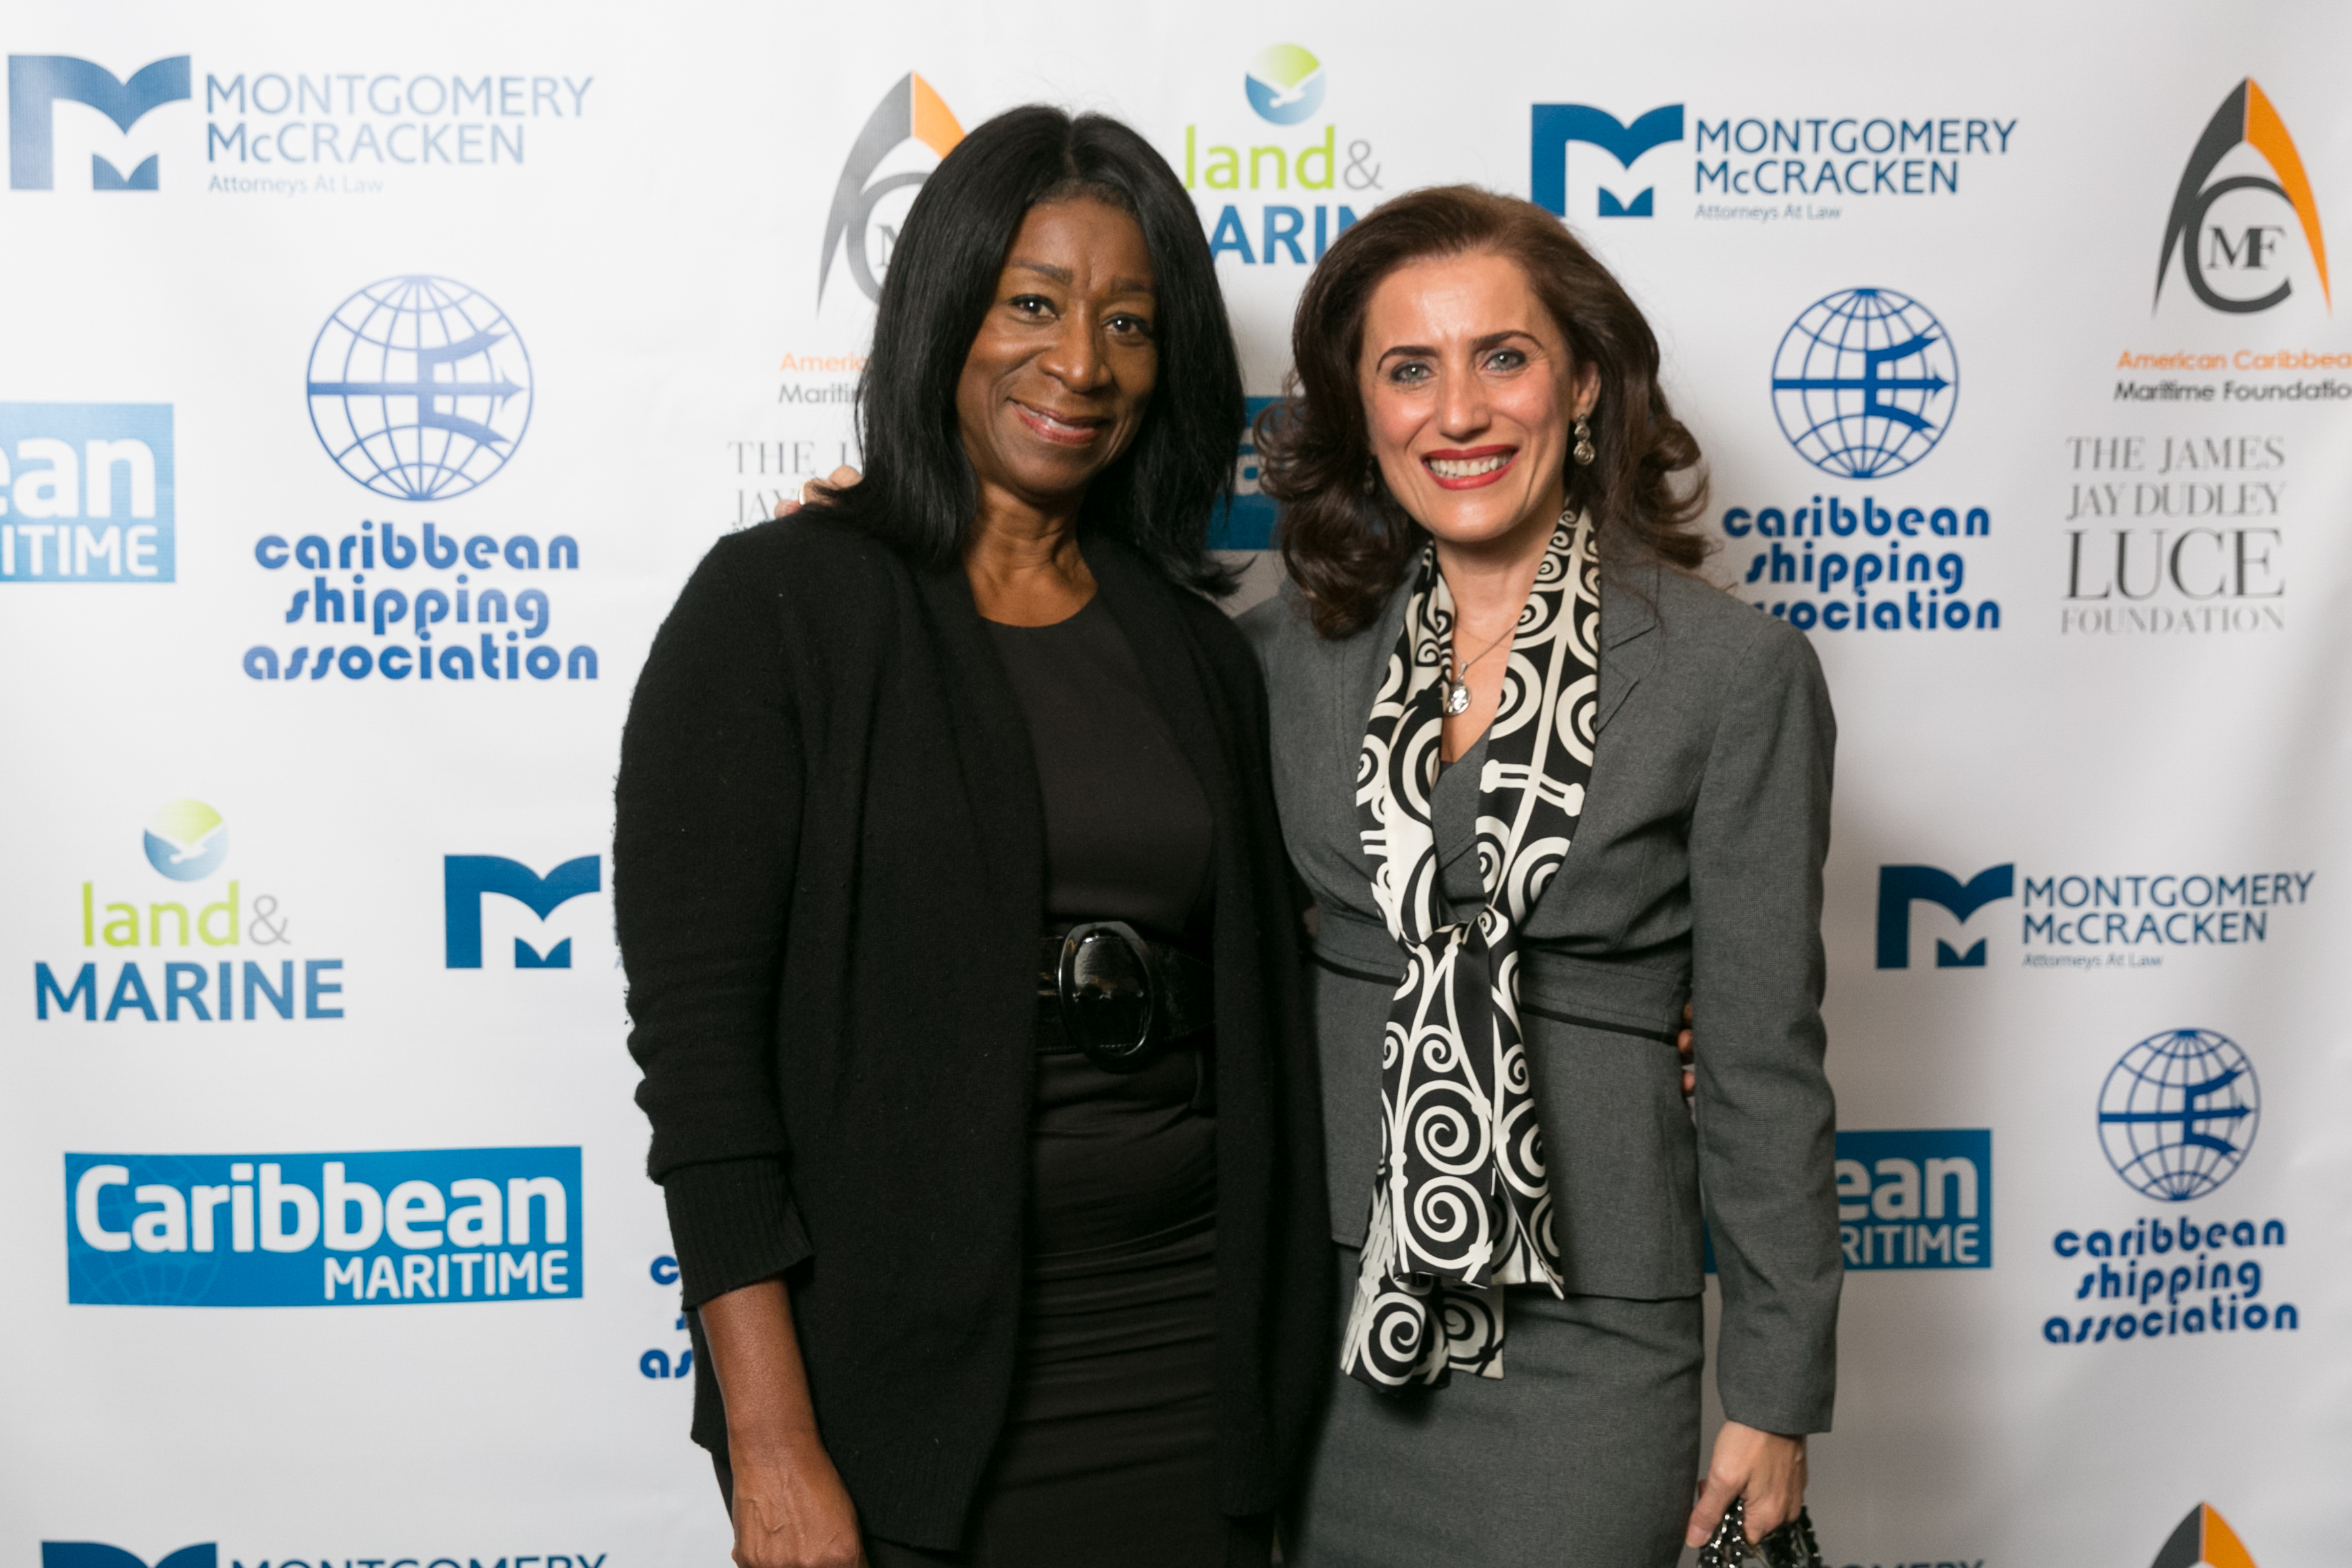 Gallery – The American Caribbean Maritime Foundation